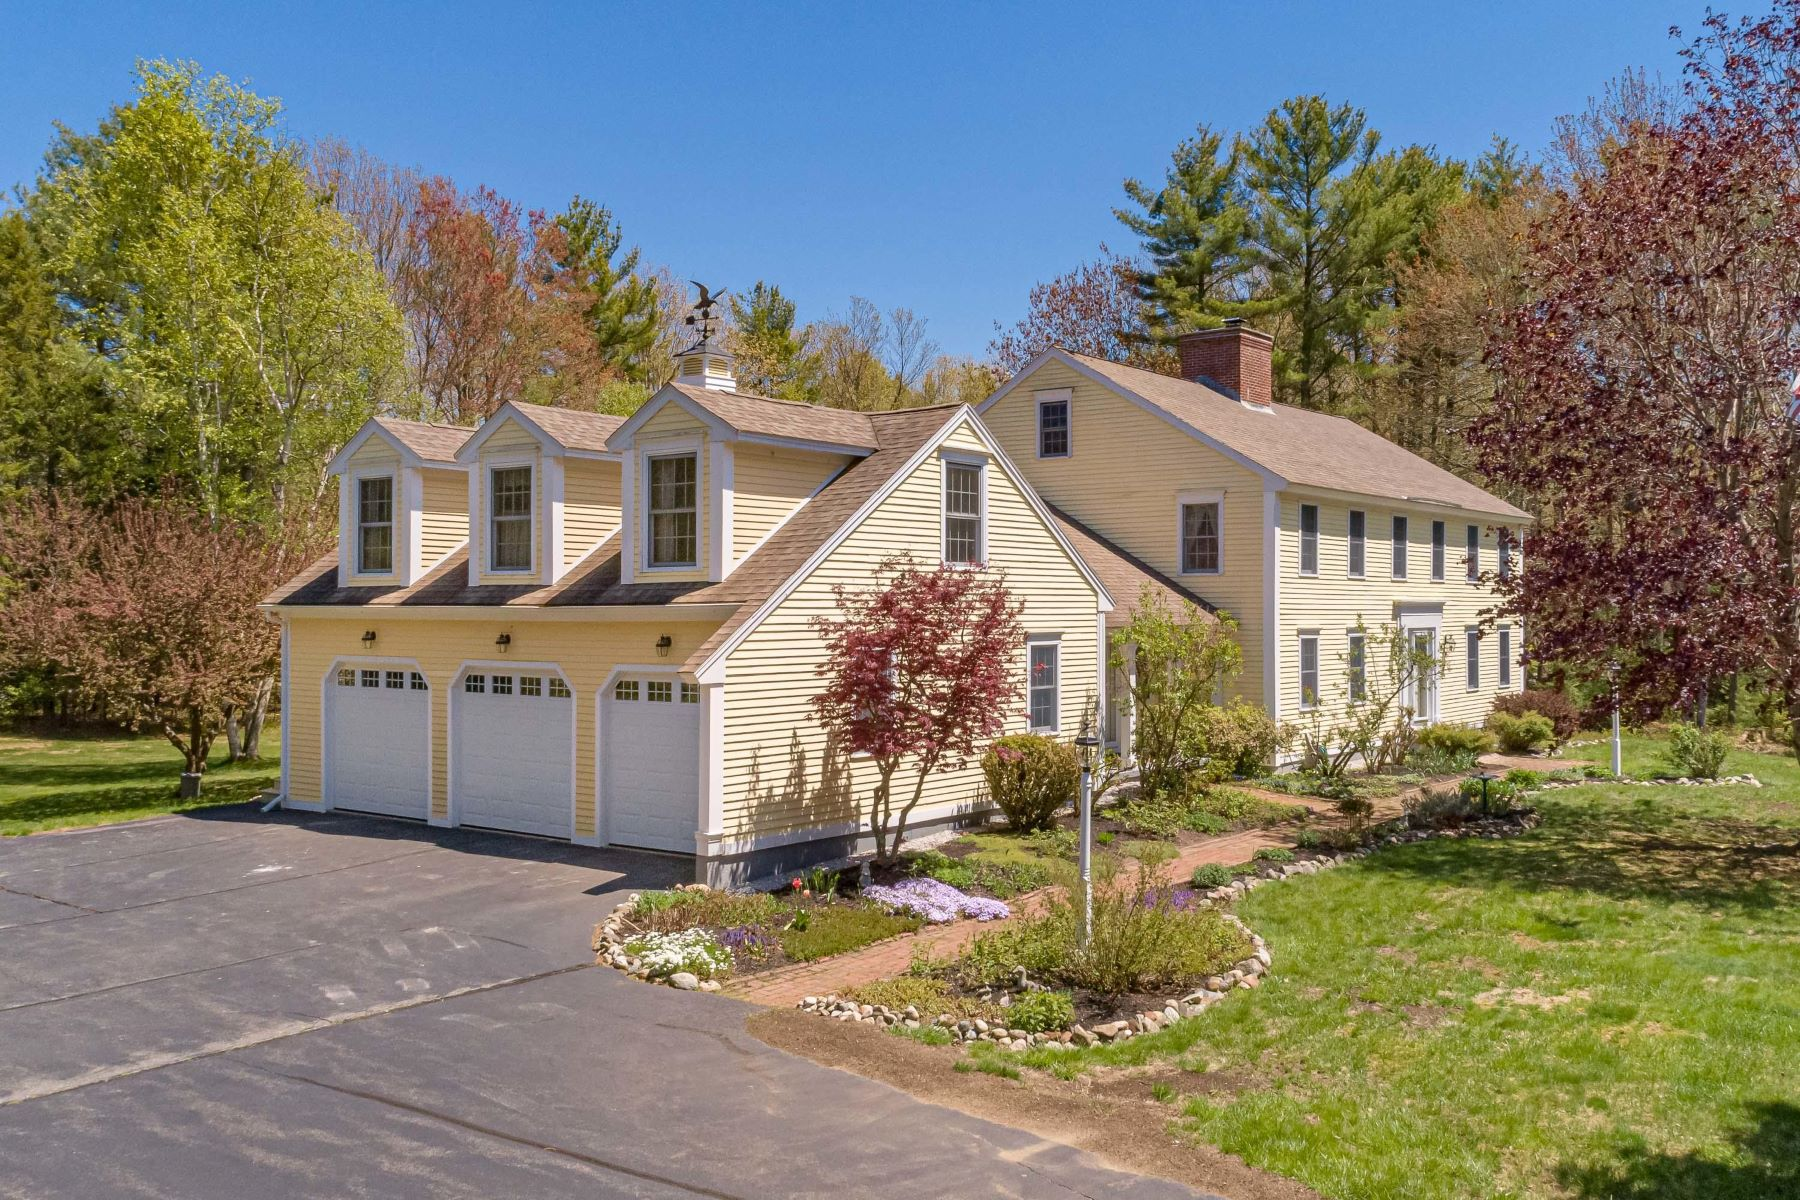 Single Family Homes for Active at 35 Heritage Lane Kennebunk, Maine 04043 United States